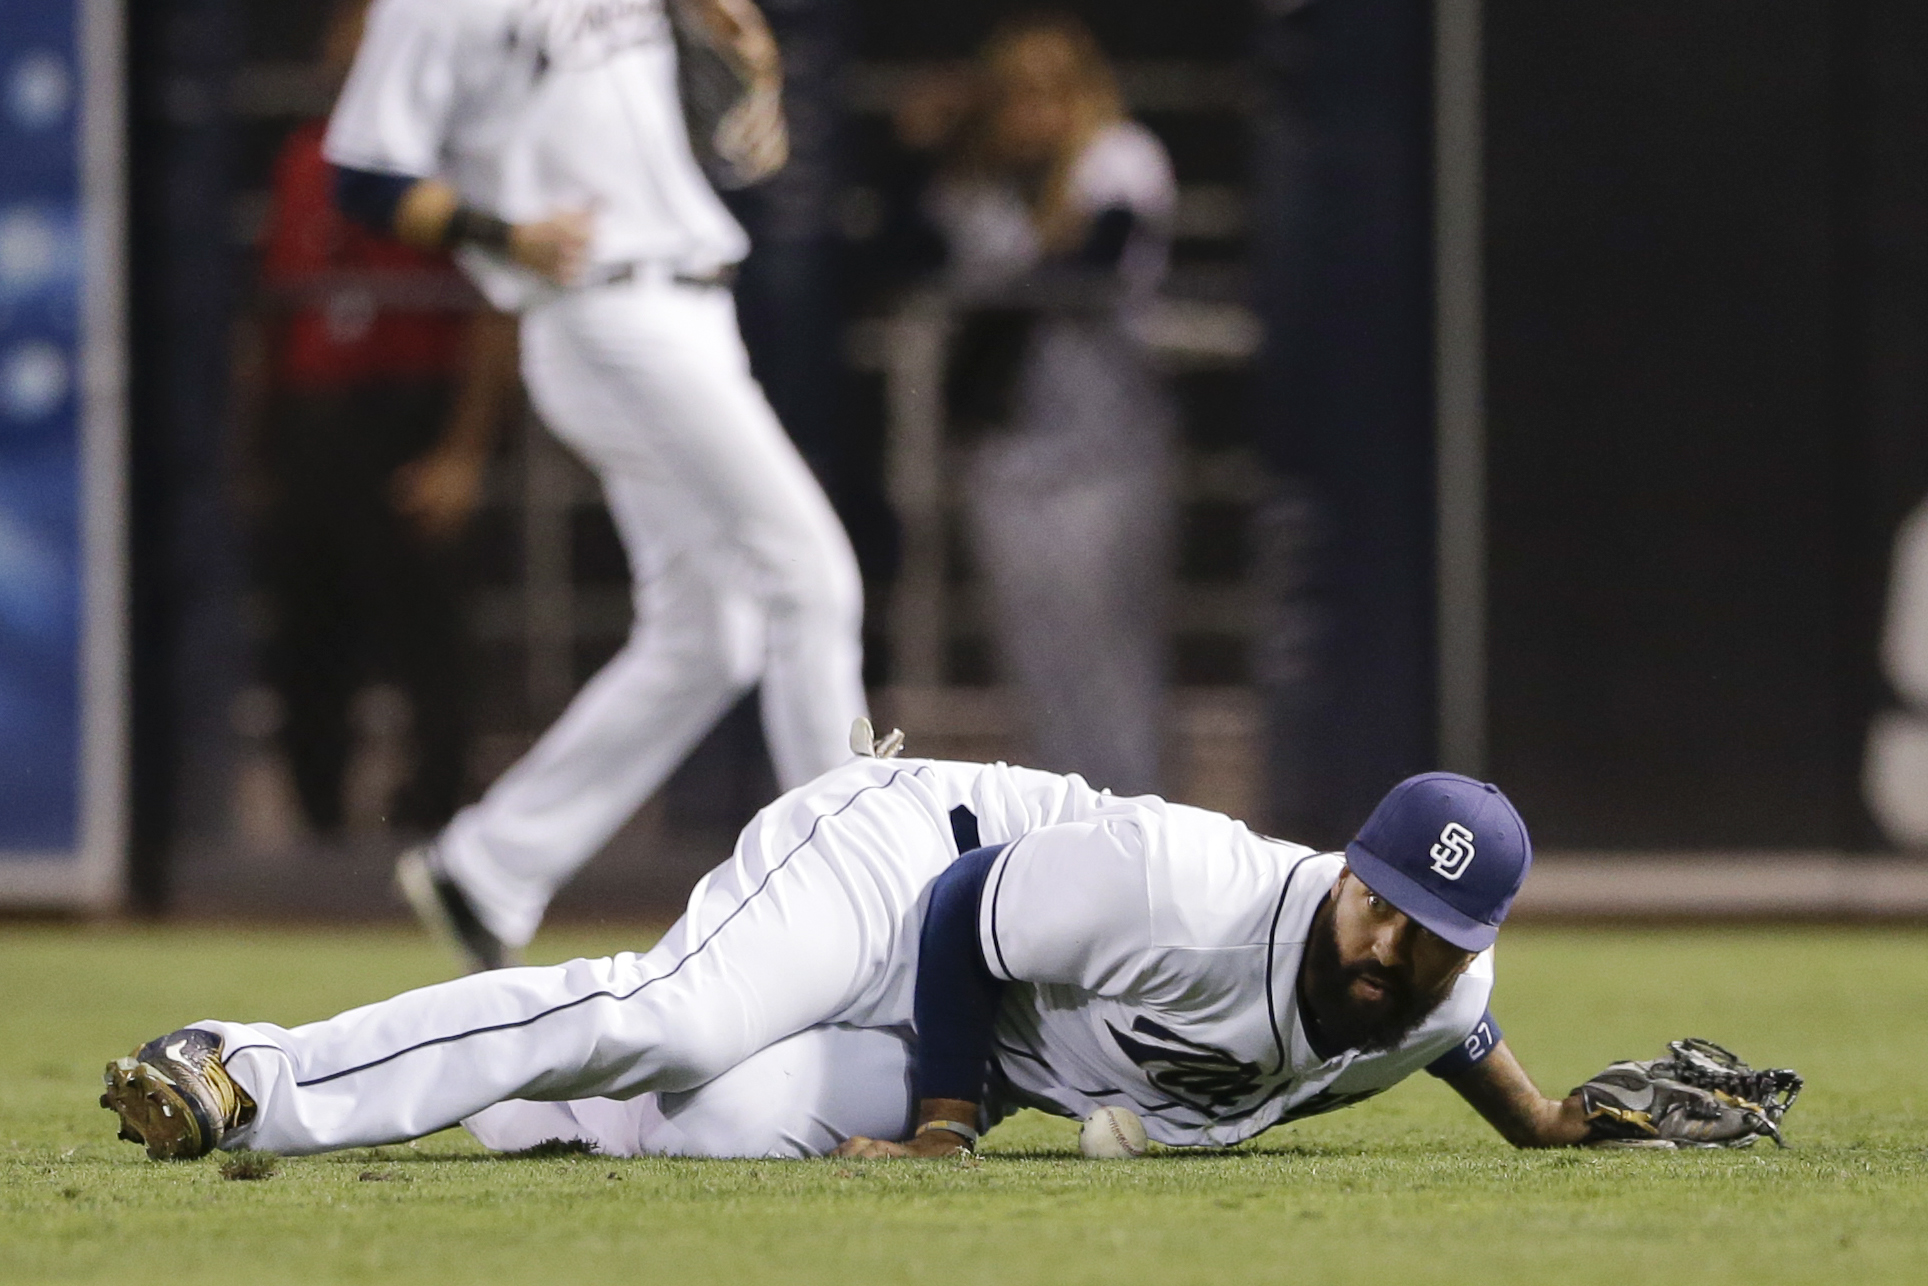 San Diego Padres right fielder Matt Kemp drops the ball hit for a single by San Francisco Giants' Buster Posey during the ninth inning of a baseball game Wednesday, Sept. 23, 2015, in San Diego. Kemp picked up an error on the play. (AP Photo/Gregory Bull)